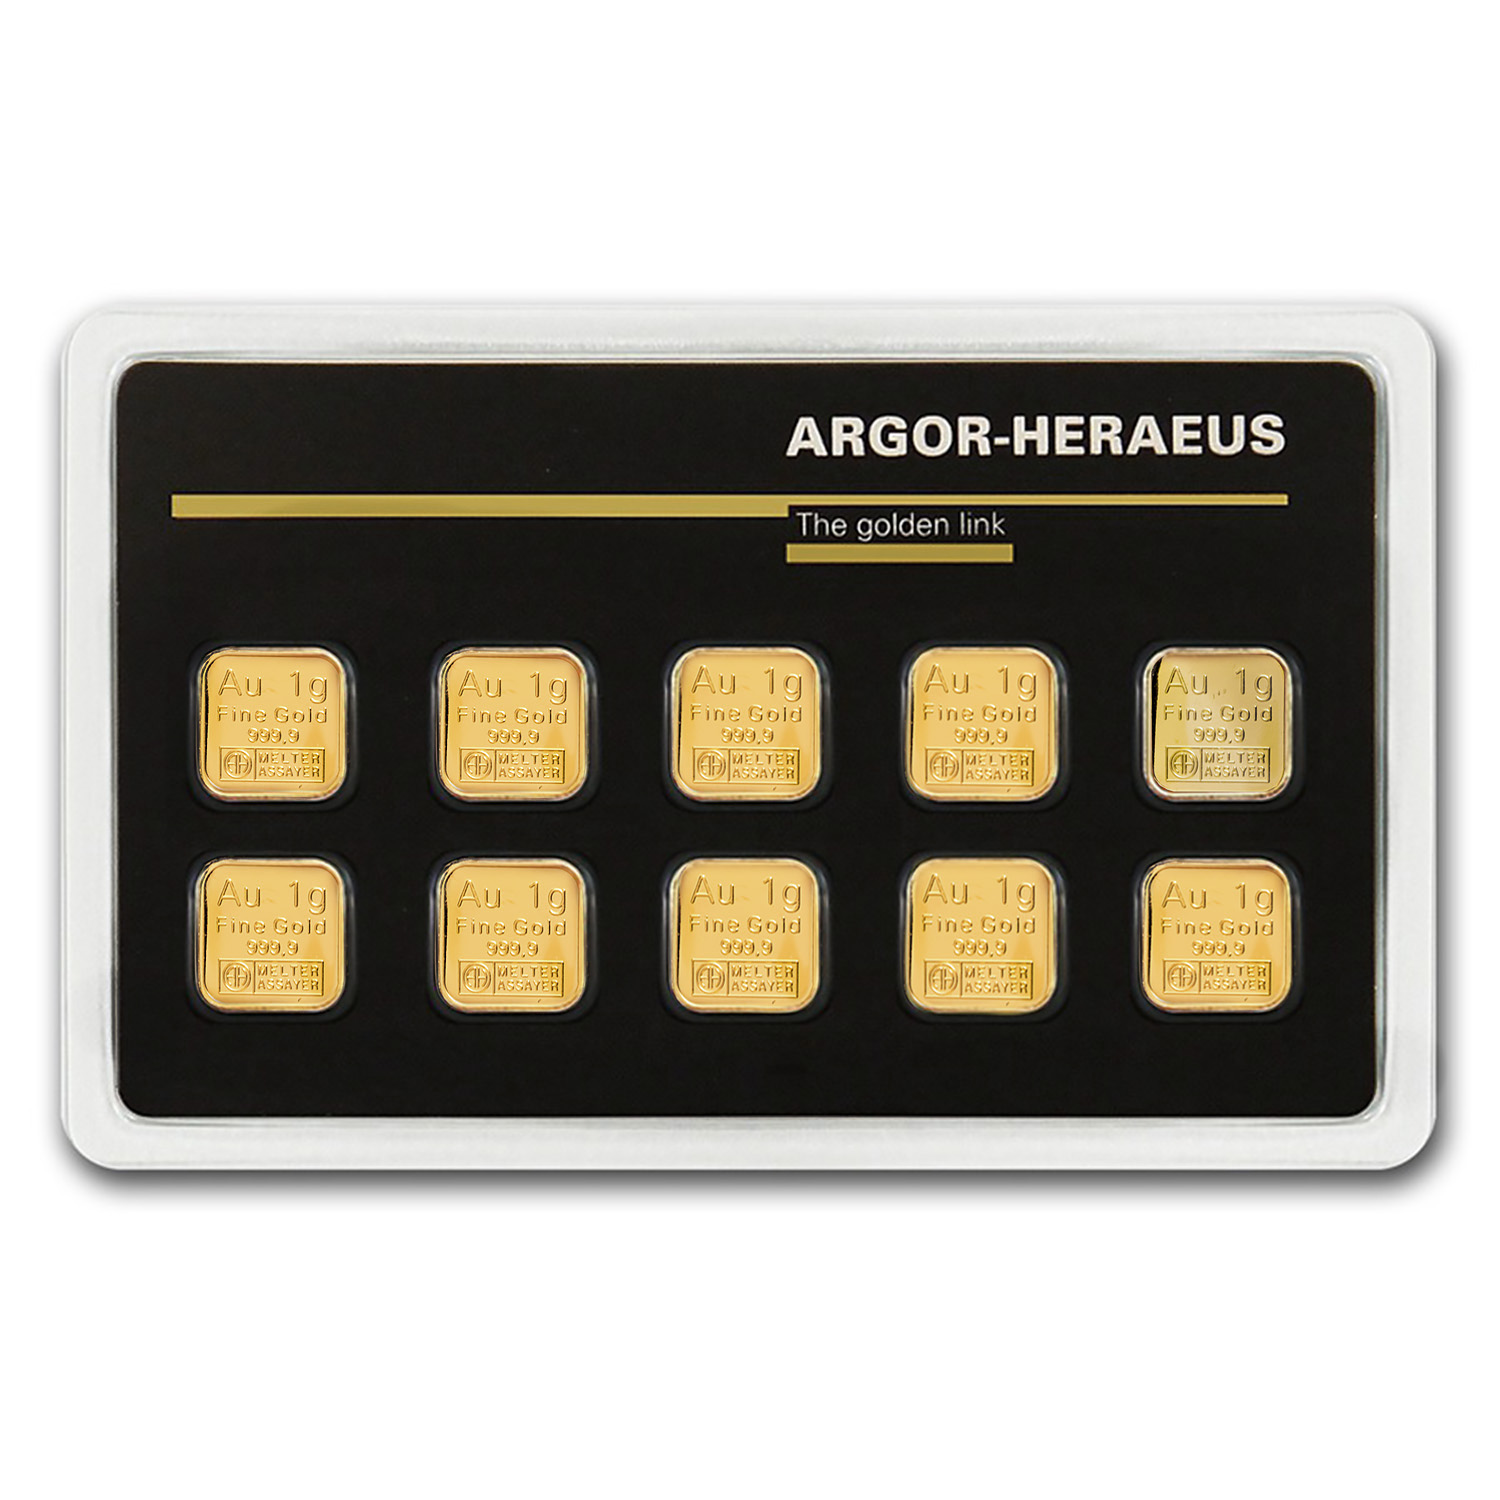 10x 1 gram Gold Bars - Argor-Heraeus (In Assay)